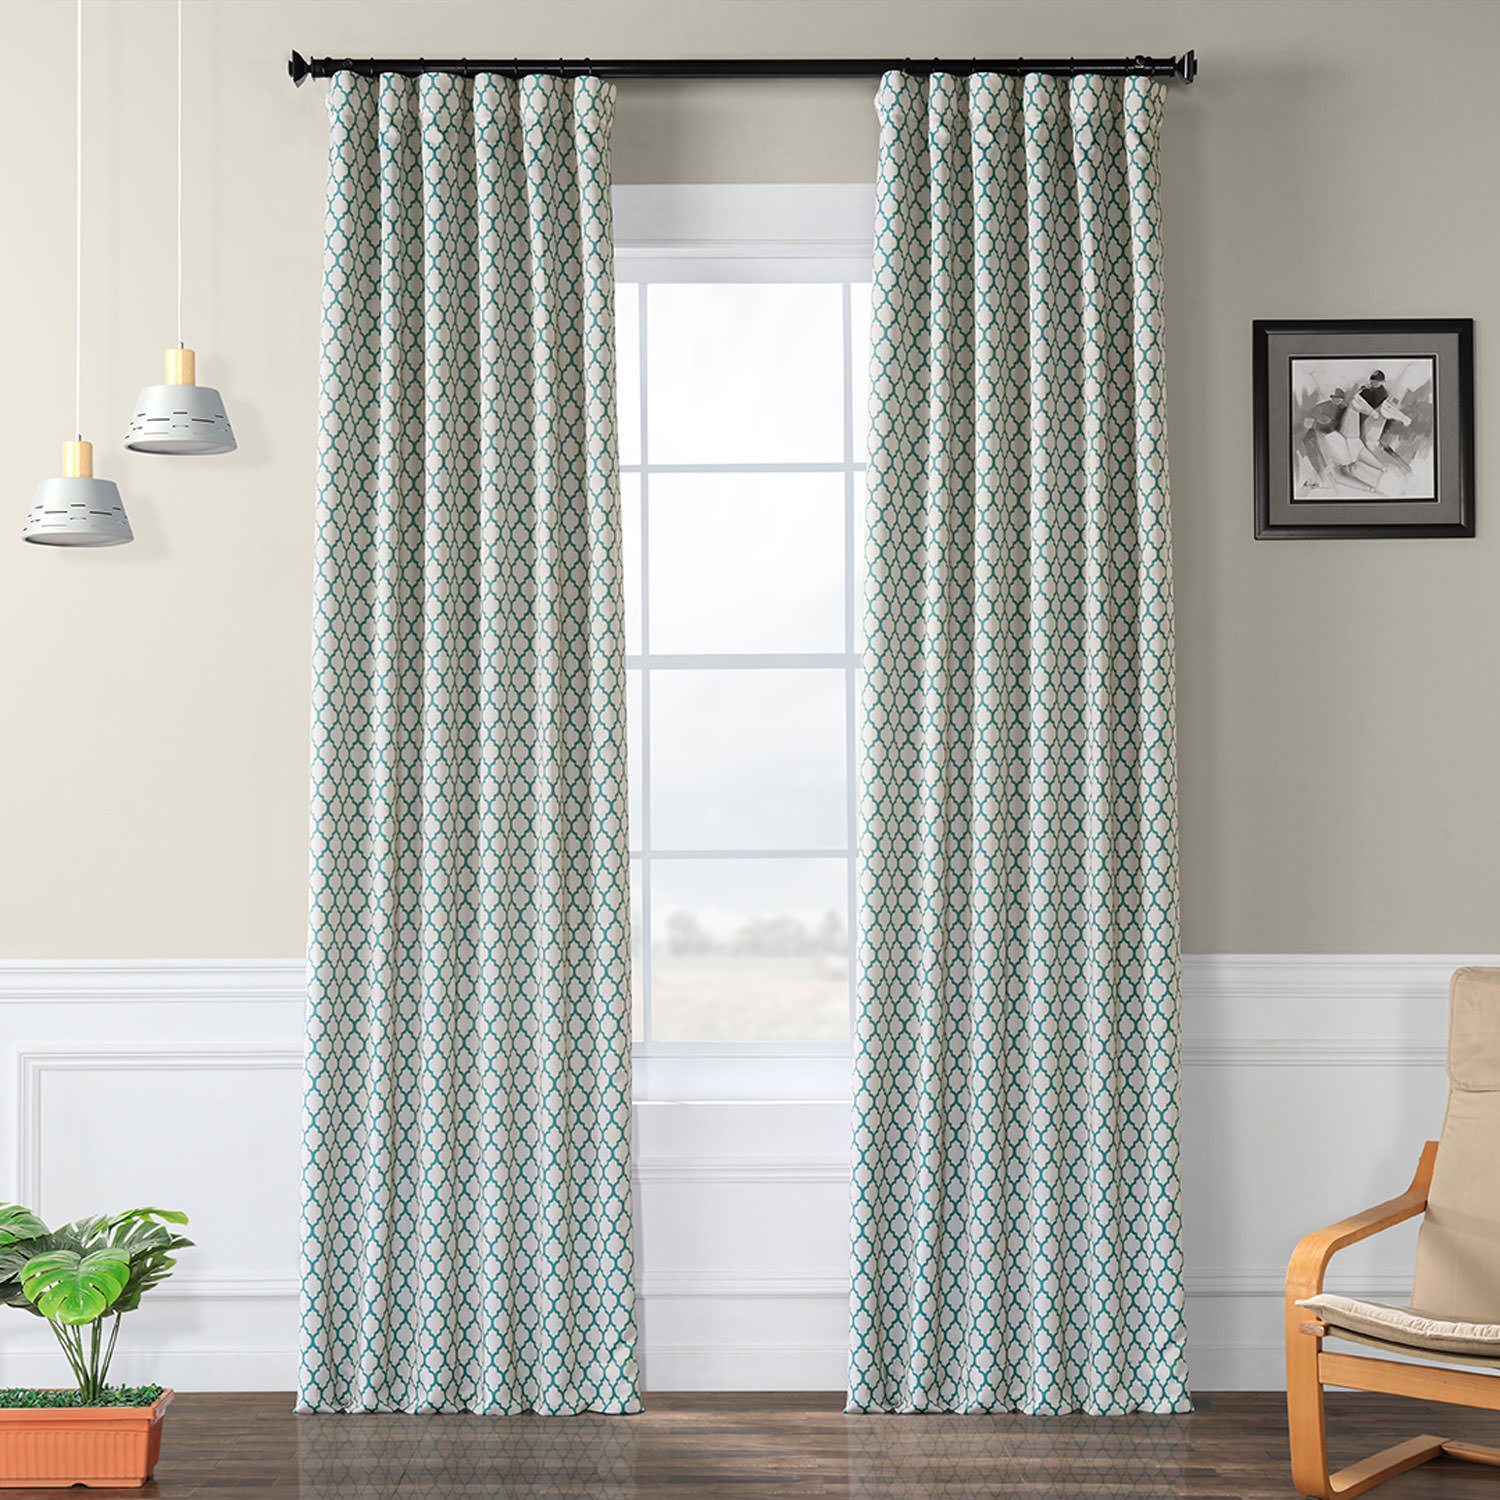 Casablanca Teal Blackout Curtain